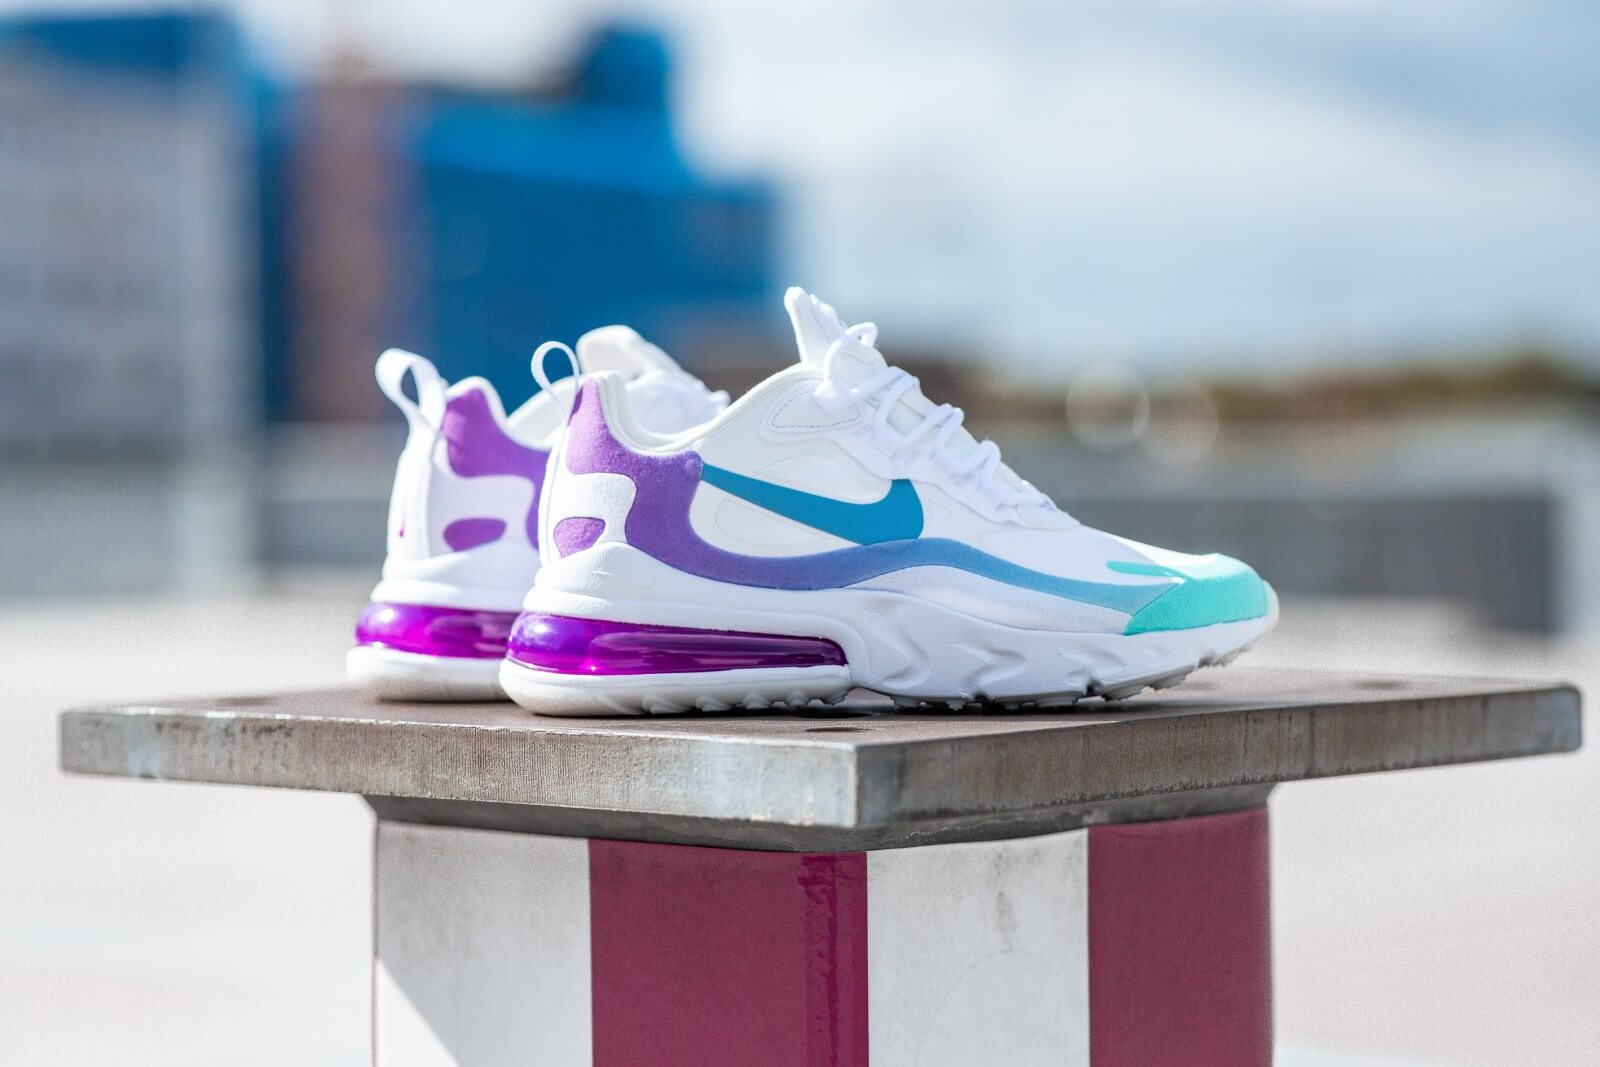 Air Max 270 React White Purple Off 74 Www Gentlementours Hu